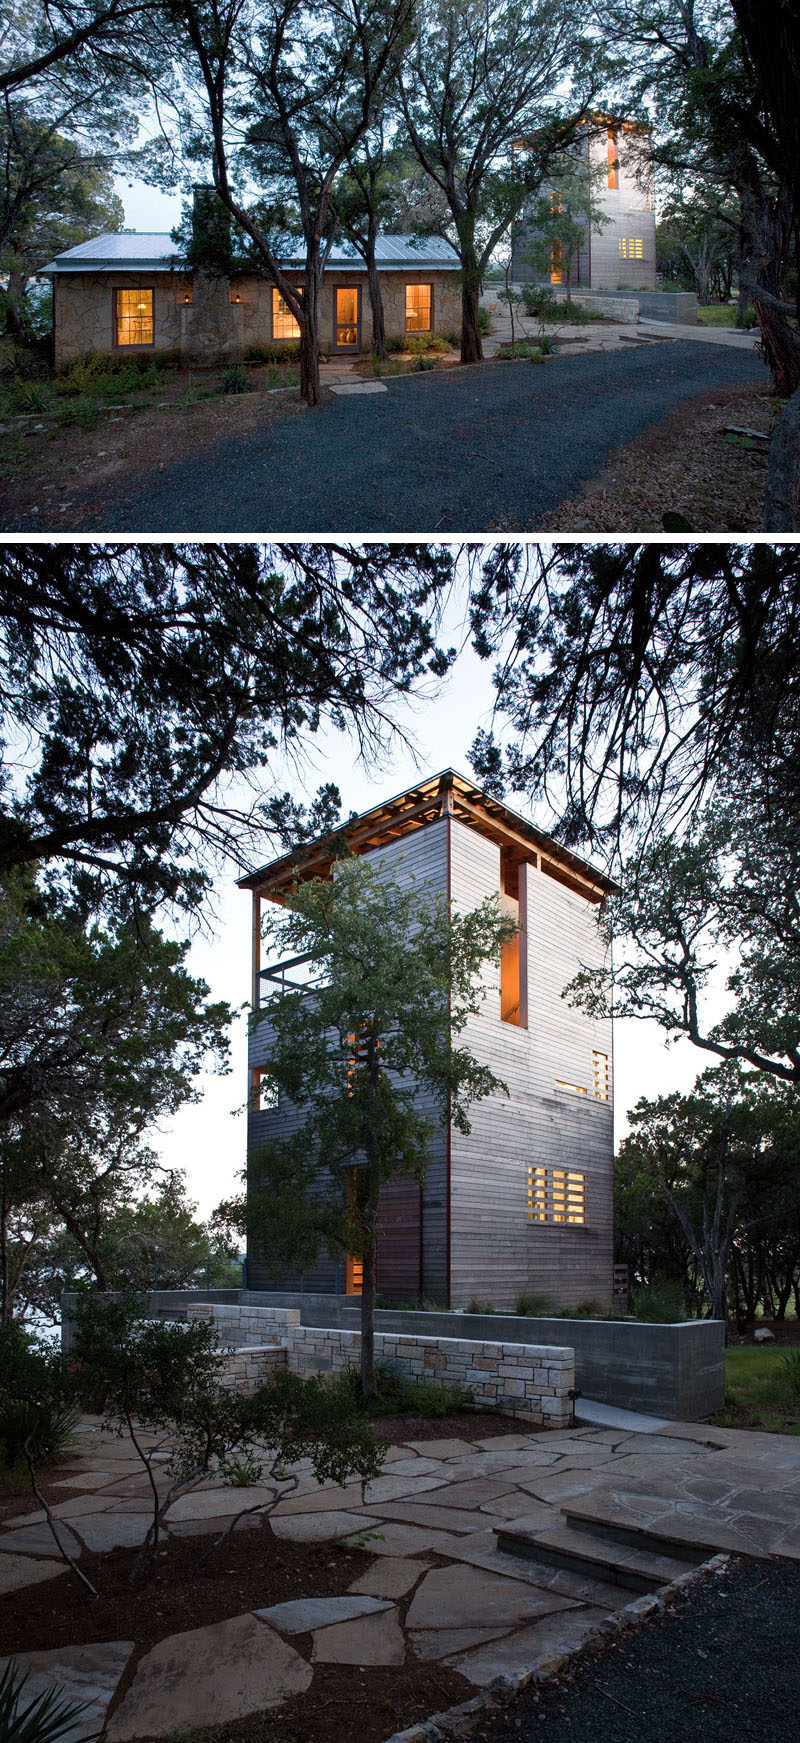 Andersson-Wise Architects have designed the Tower House in Austin, Texas, as a solution to their clients request for additional two bedrooms with baths and larger living area. Instead of building an extension onto a 1930's limestone cabin, they instead created a vertical tower of wood nearby. #ModernArchitecture #Tower #ModernHouse